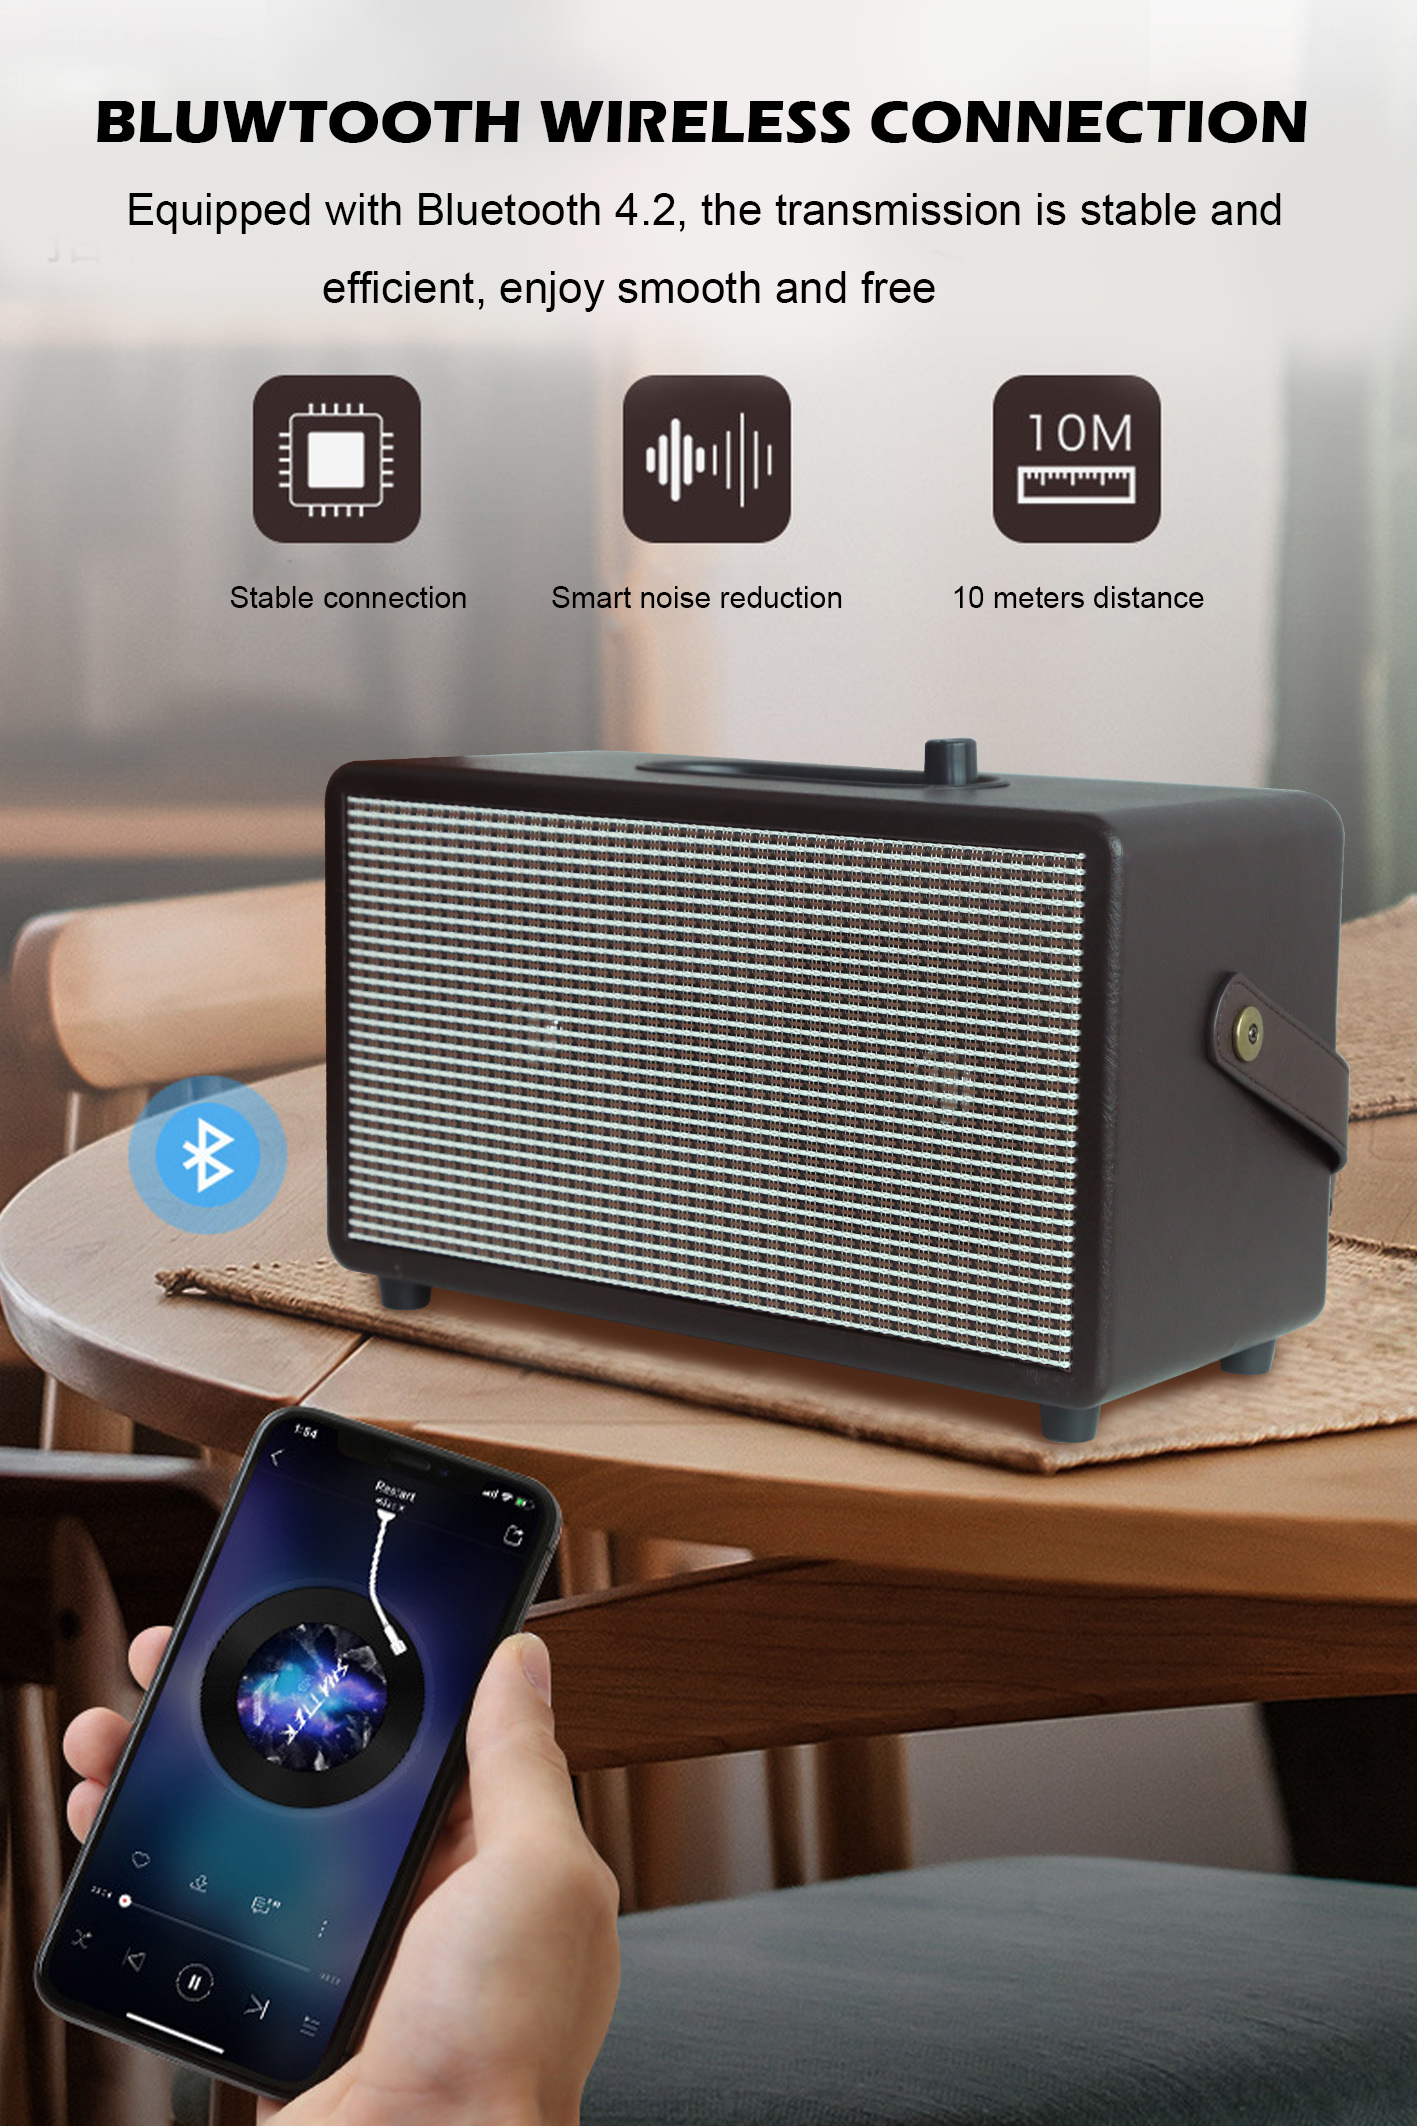 15 Watt Big Size Strong Bass BT Portable Wooden Bluetooth subwoofers speakers with fm radio